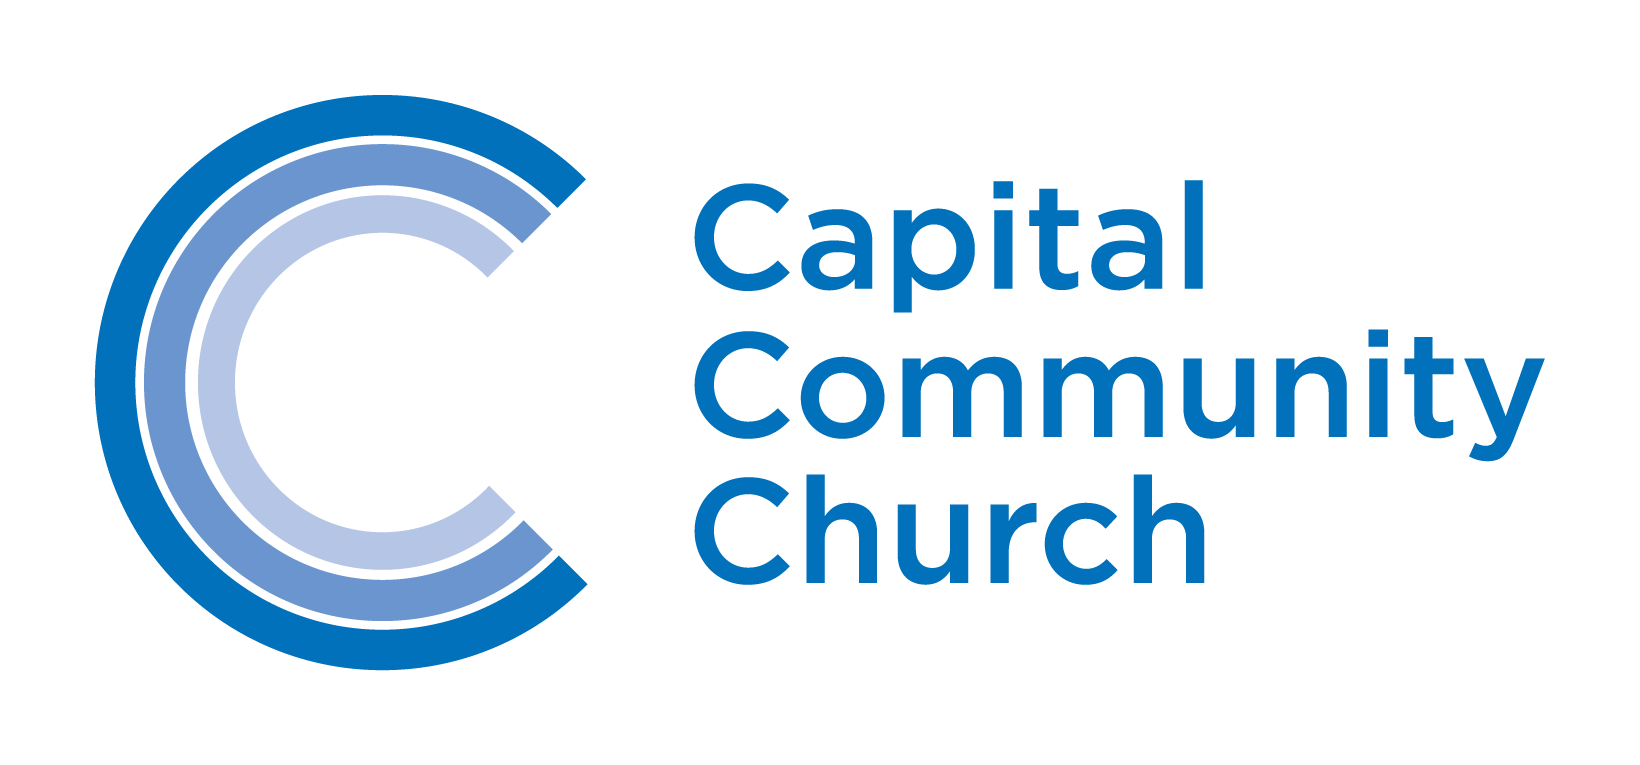 Capital Community Church